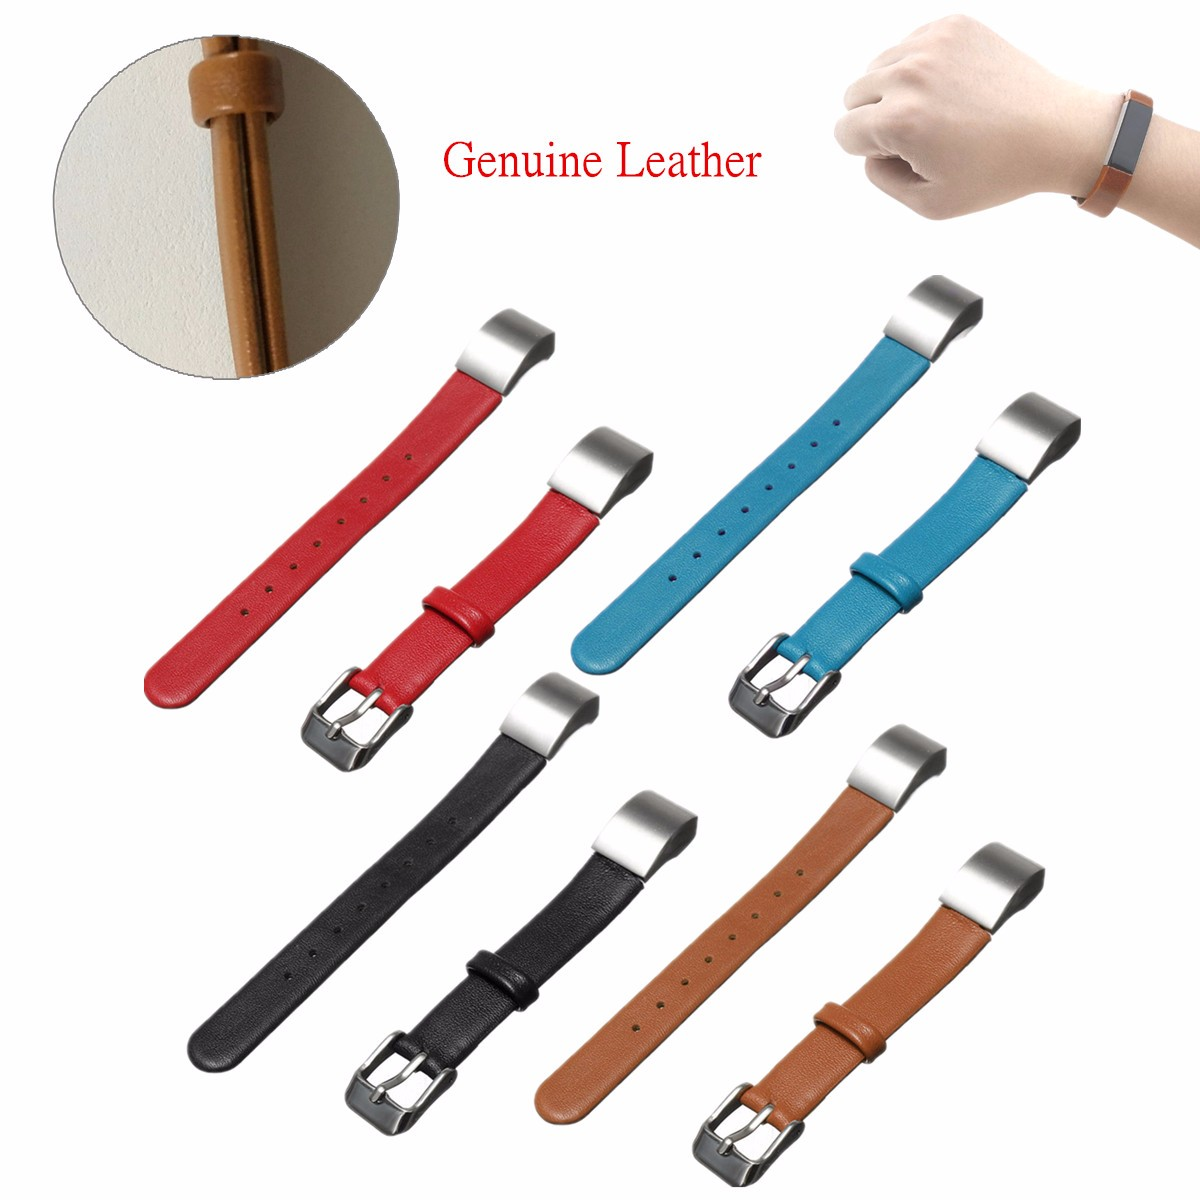 Replacement Watchbands Luxury Double Tour Genuine Leather Watchband Strap Bracelet For/Fitbit Alta Smart Watch Wrist Bands Strap replacement genuine leather wrist watchband strap for huawei talkband b3 watch